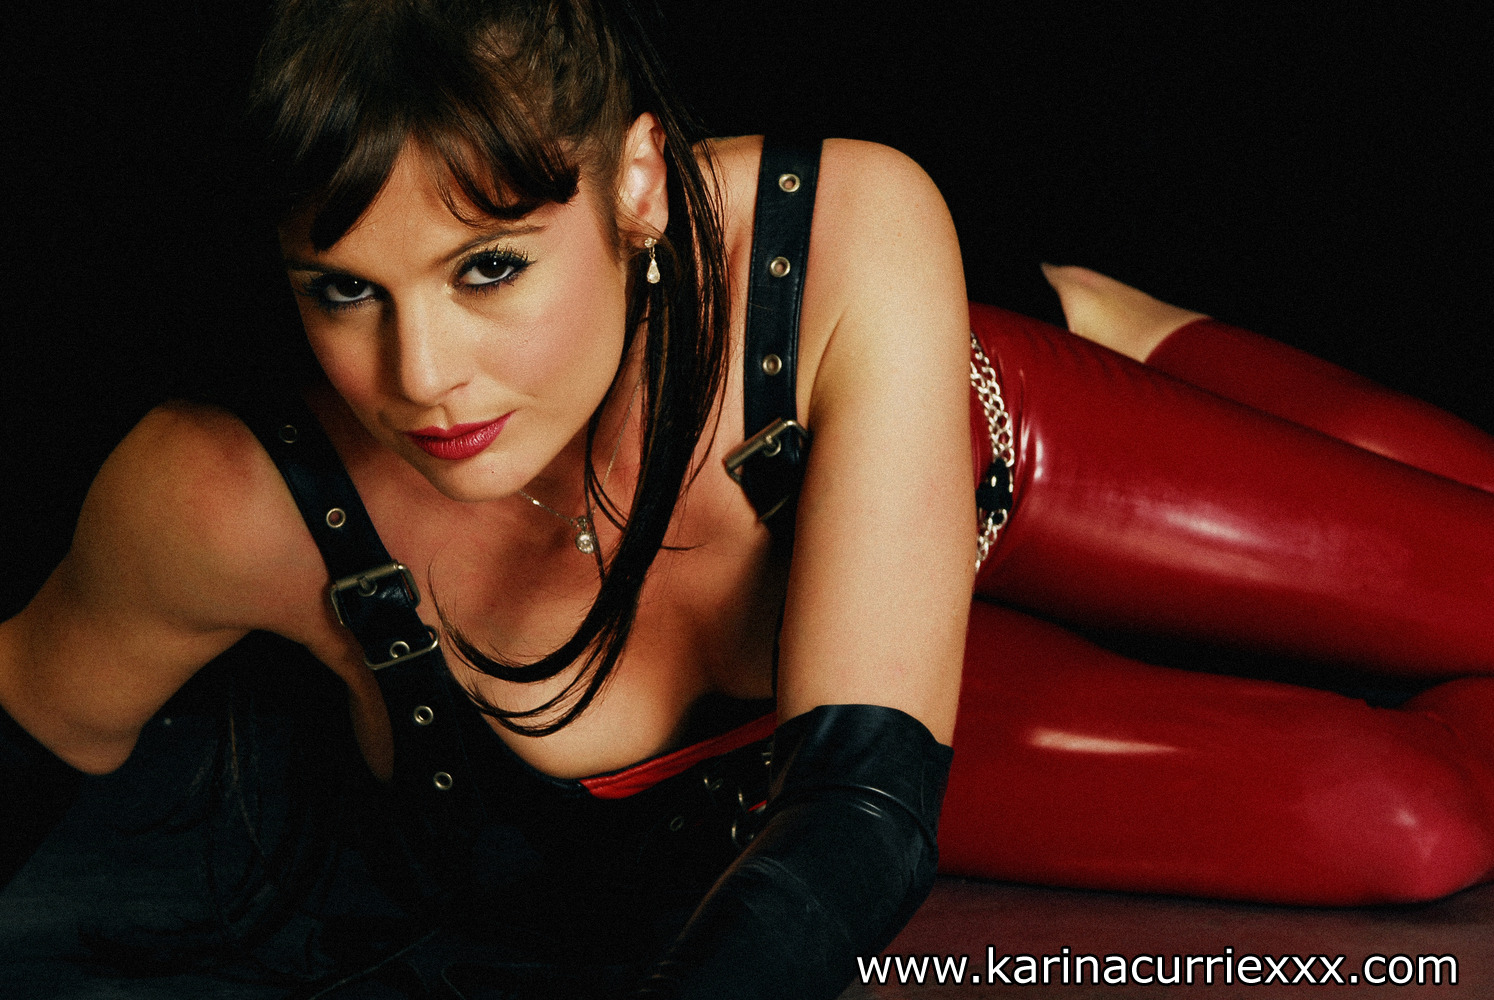 karina currie in red leather latex trouser and black buckled top laying on the floor smiling at the camera